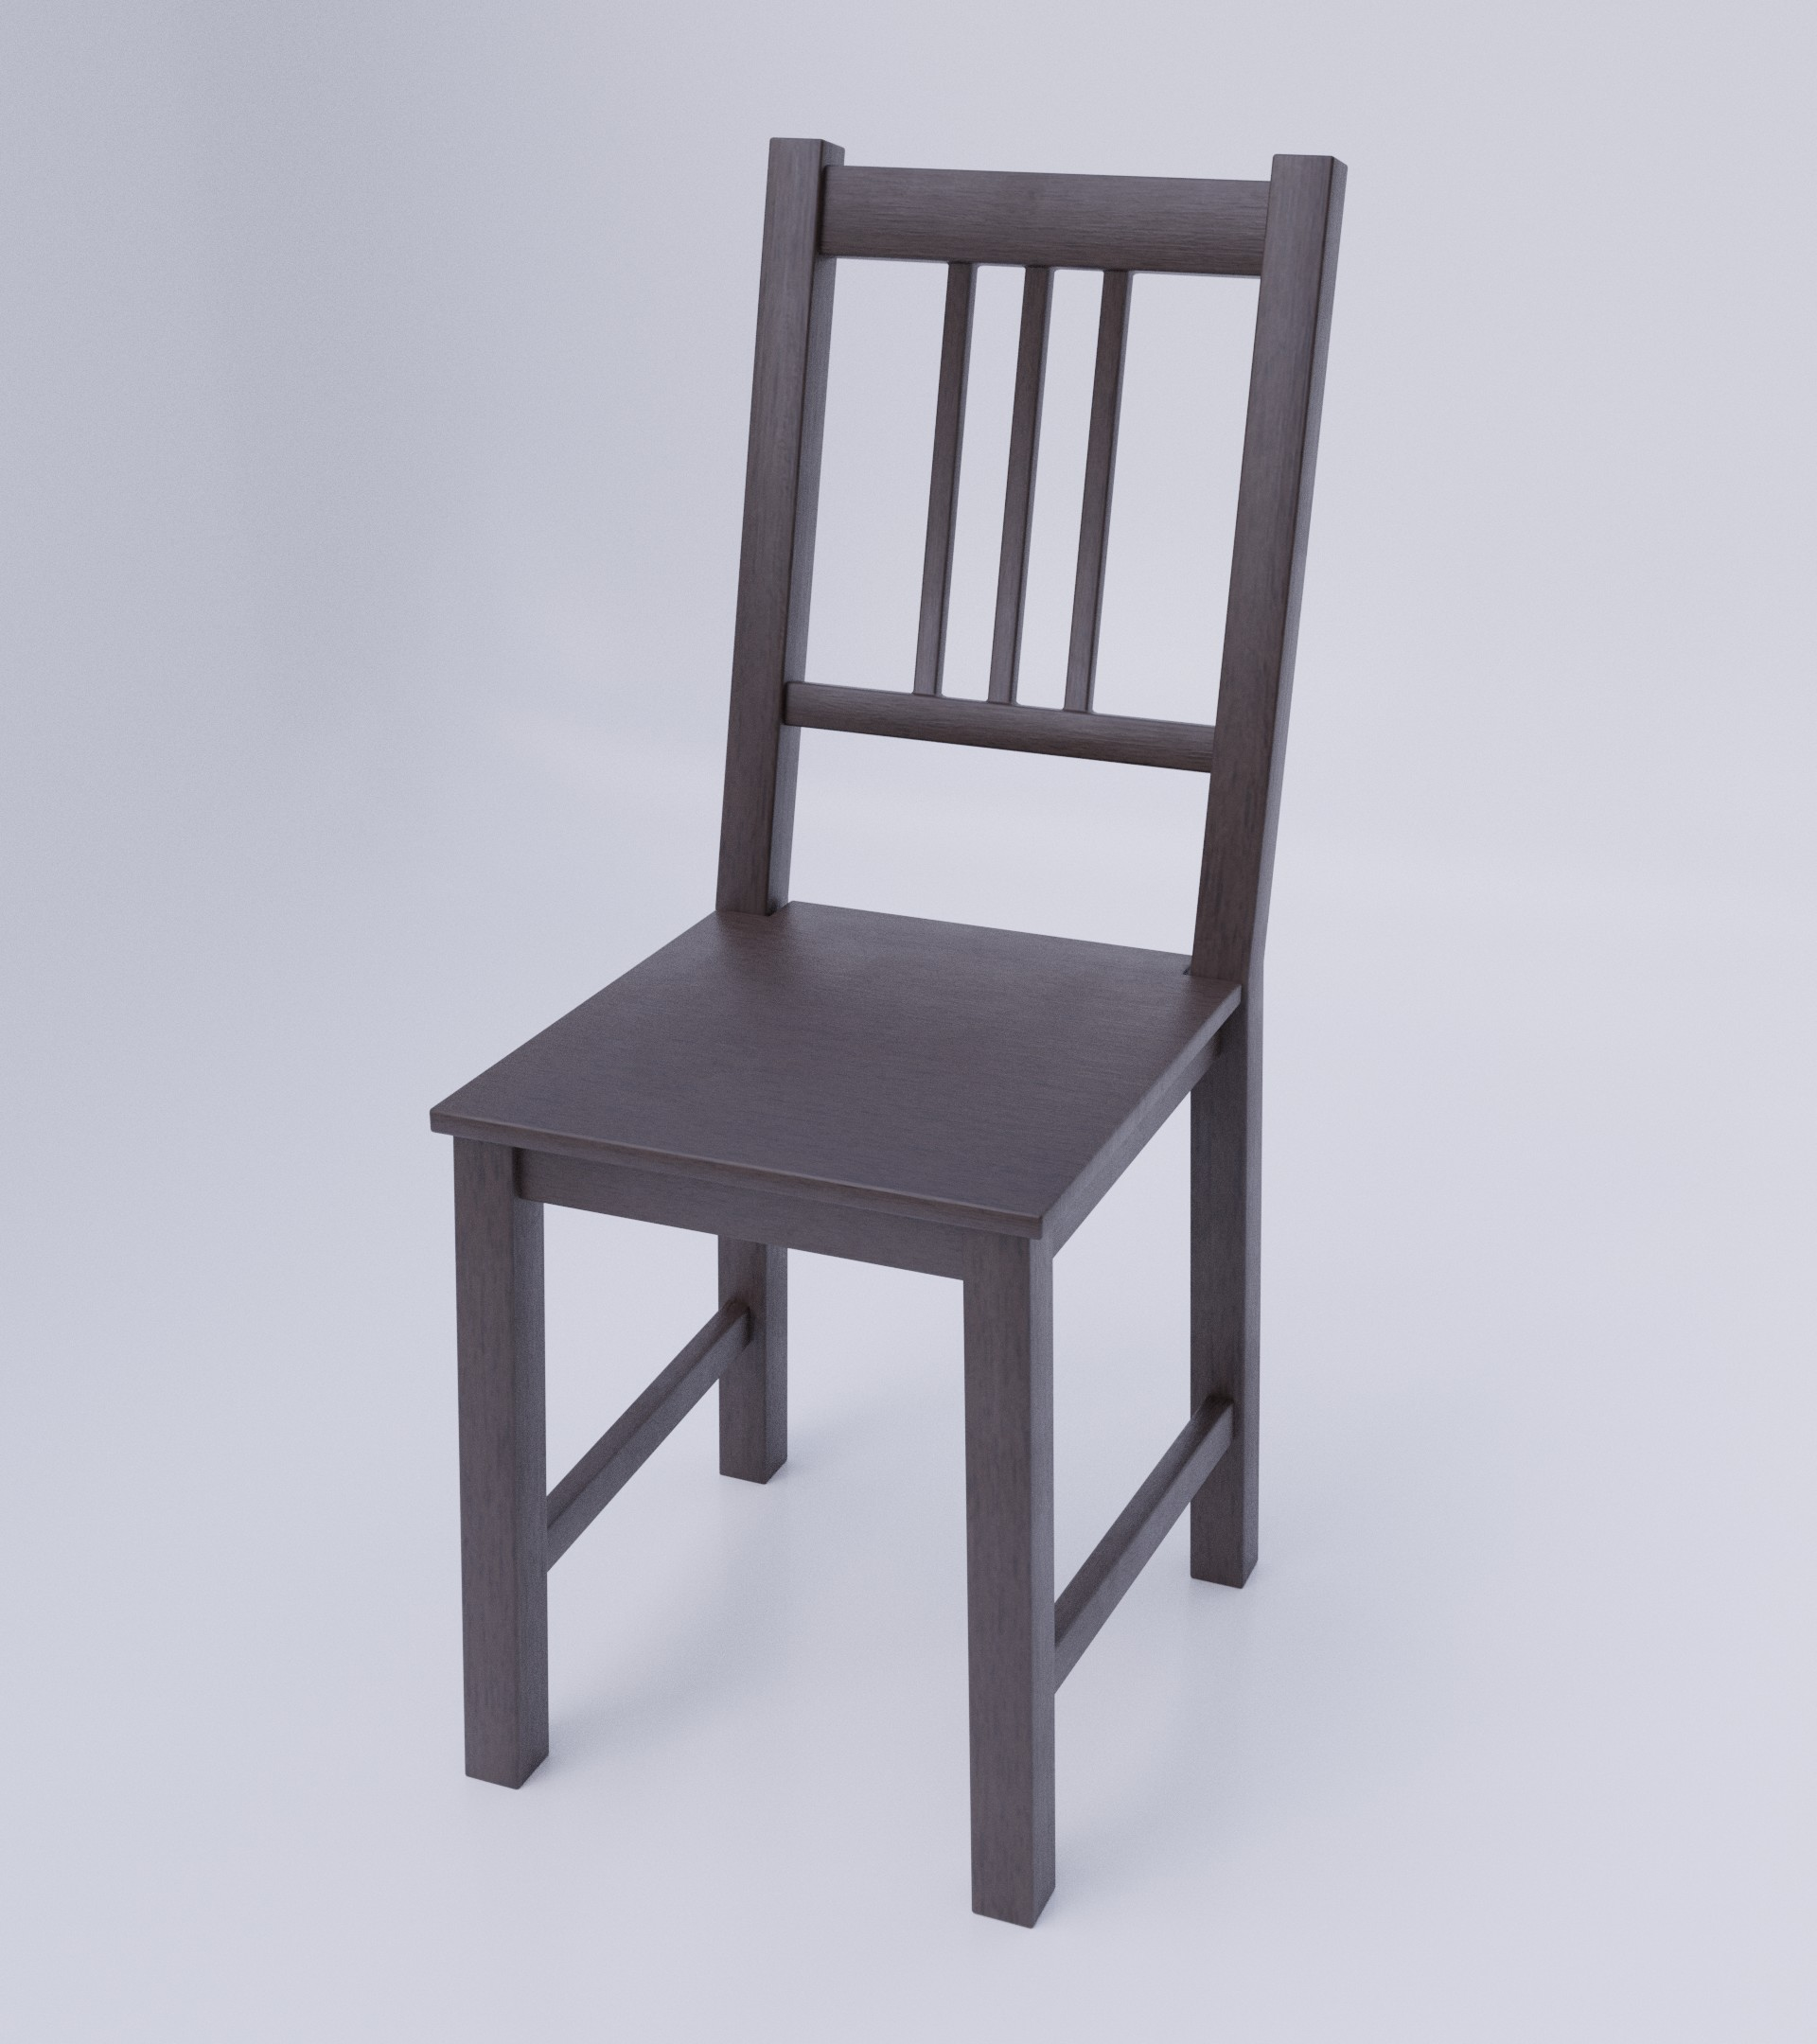 Simple Dark Wood Chair preview image 2